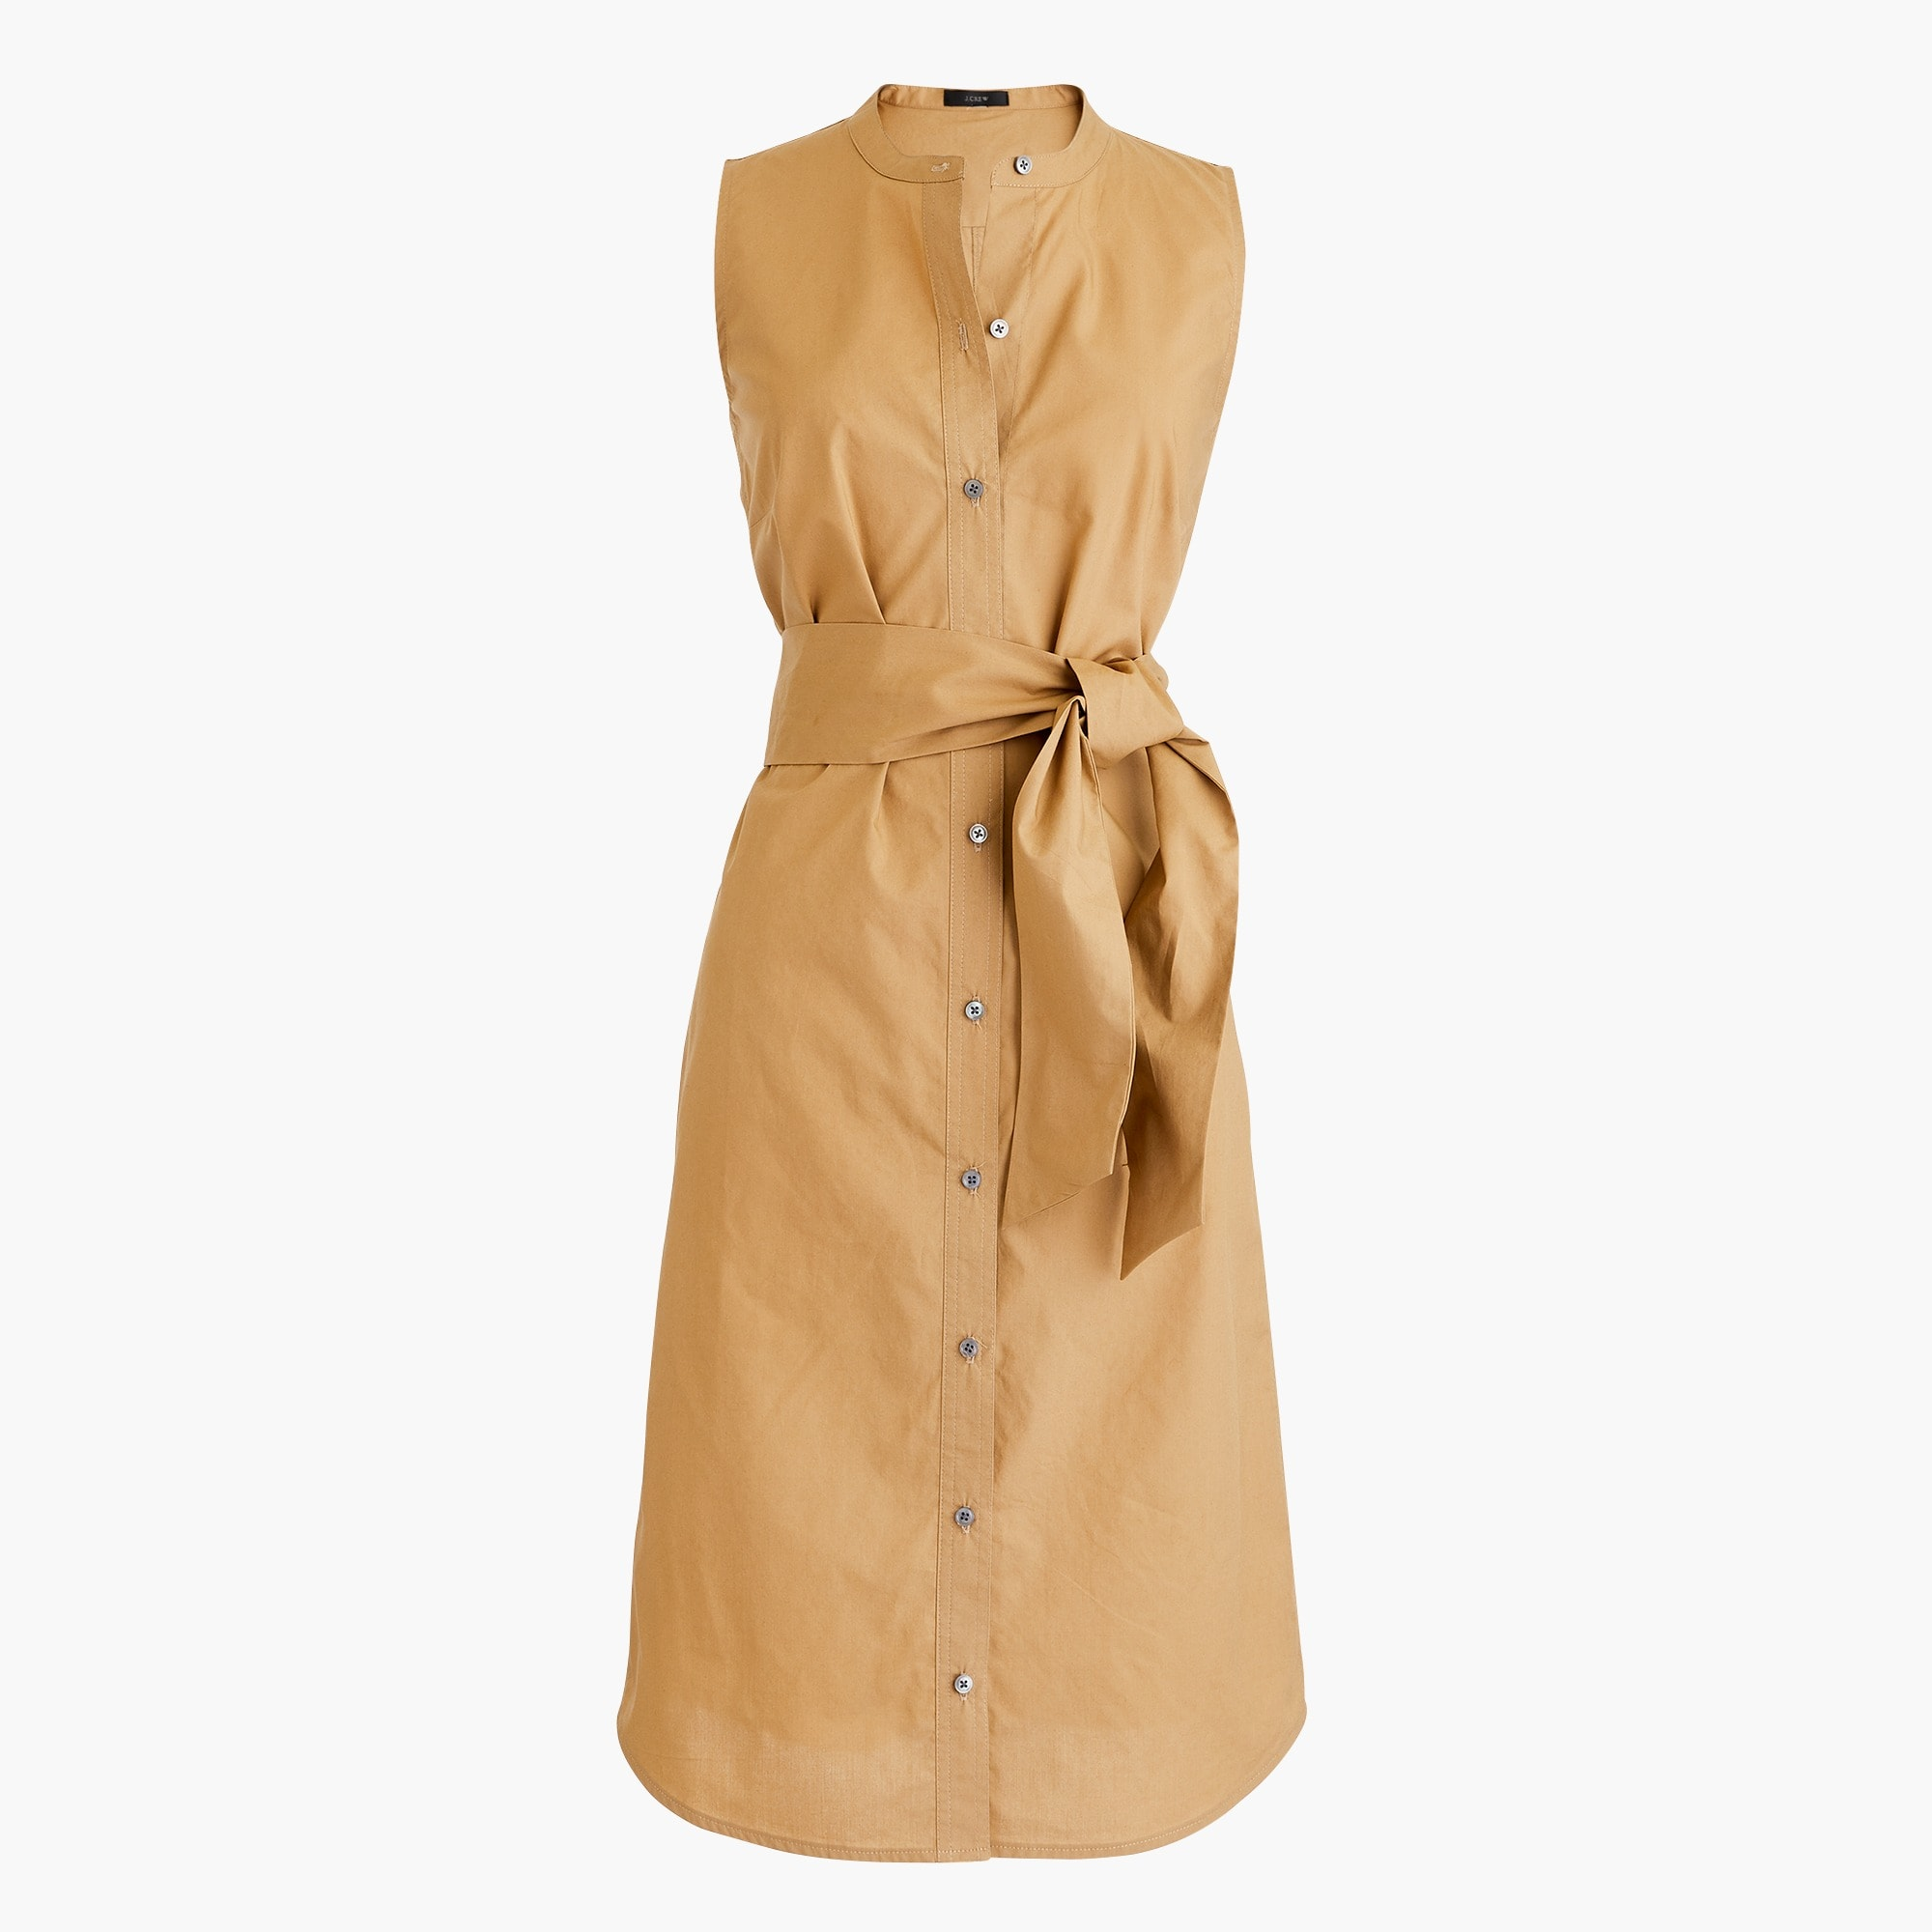 Image 2 for Sleeveless shirtdress in cotton poplin